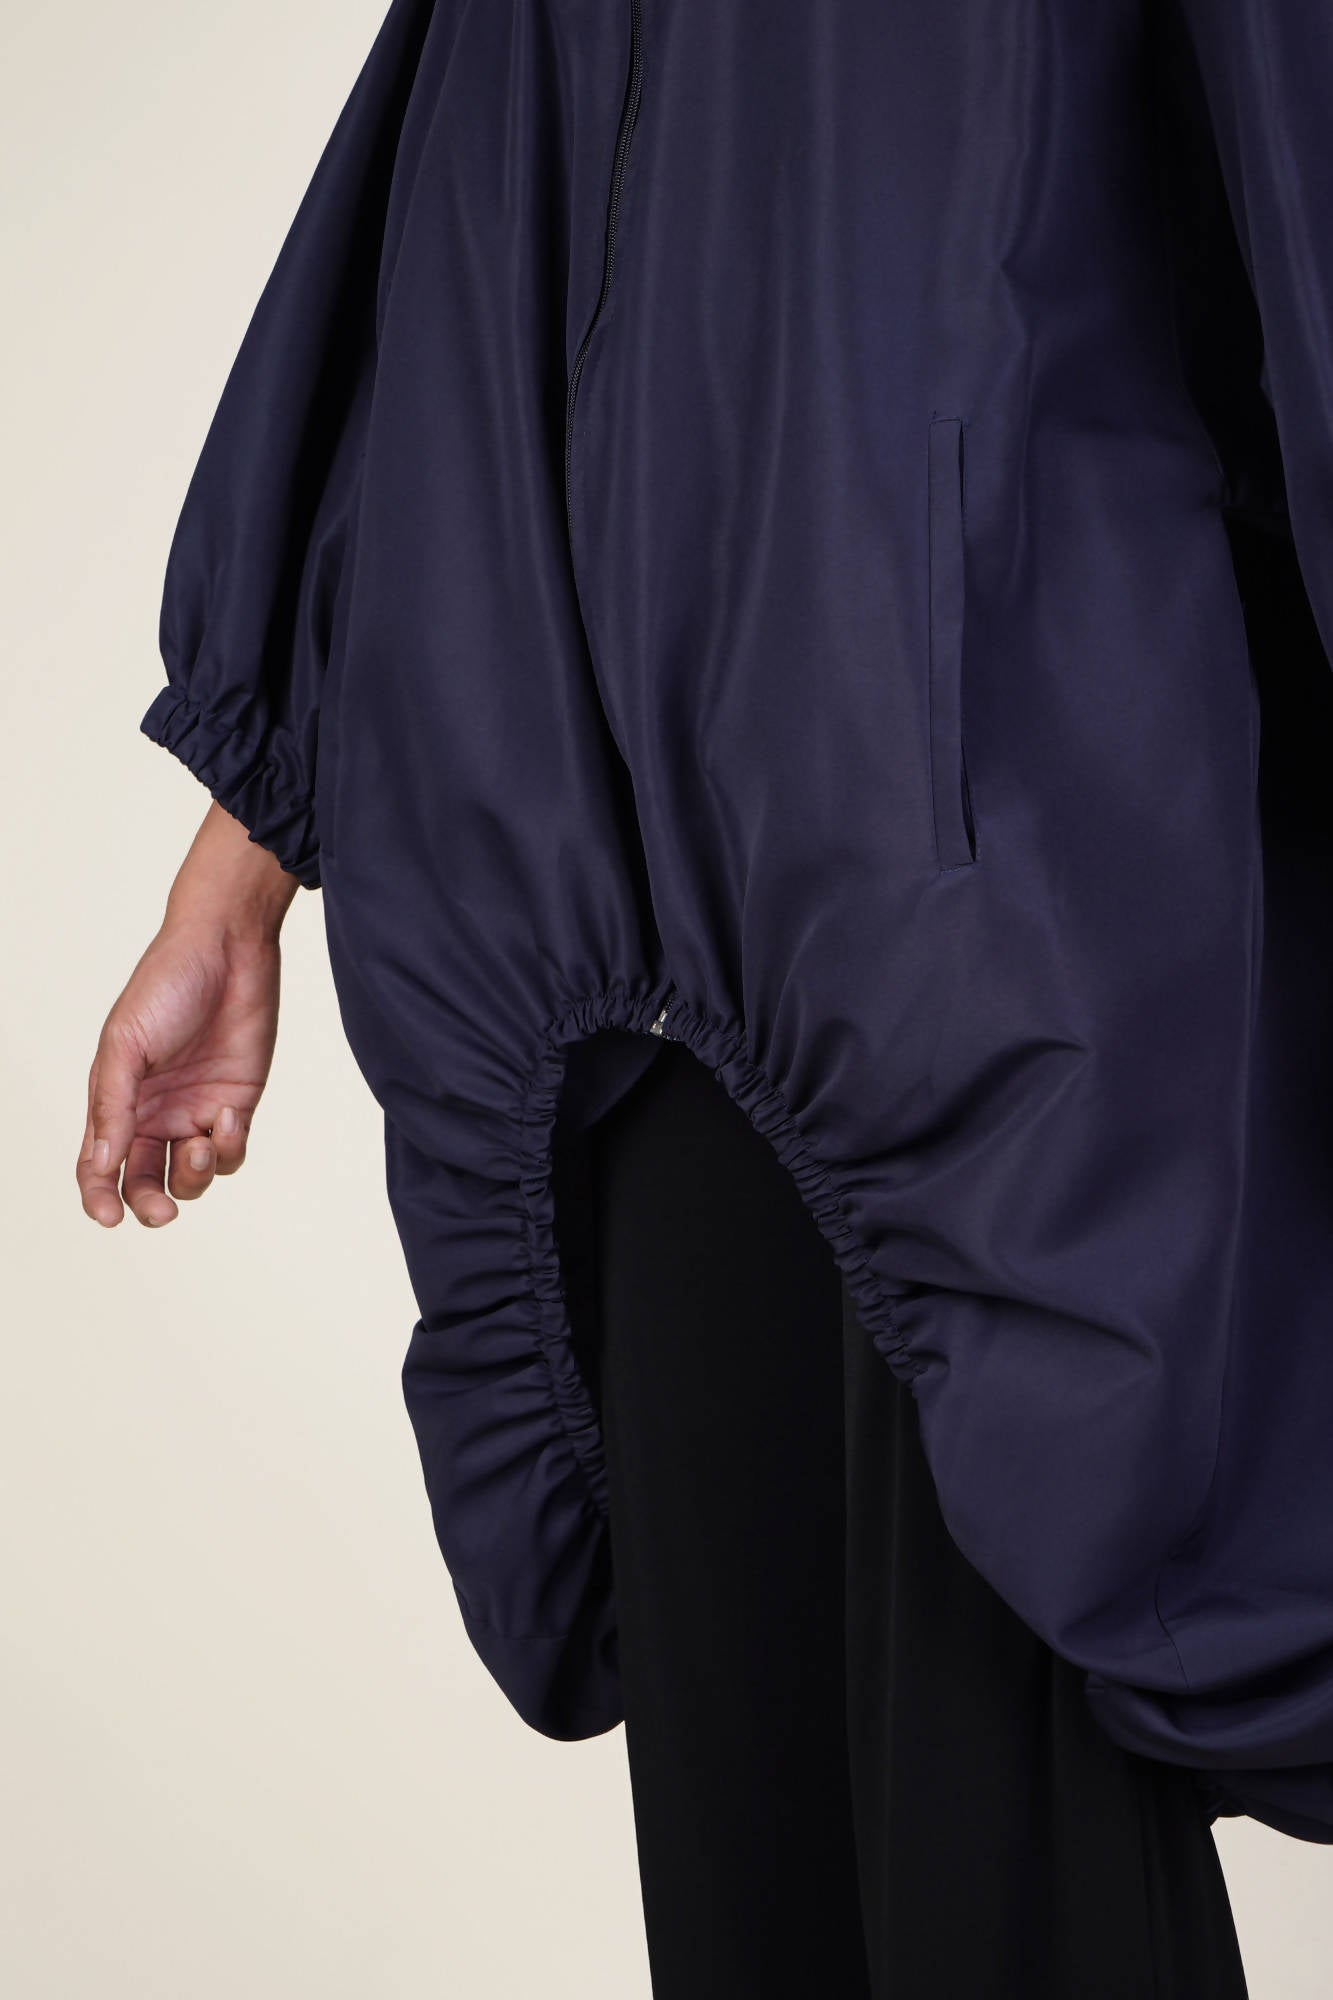 Protective Outerwear Design 4 in Navy